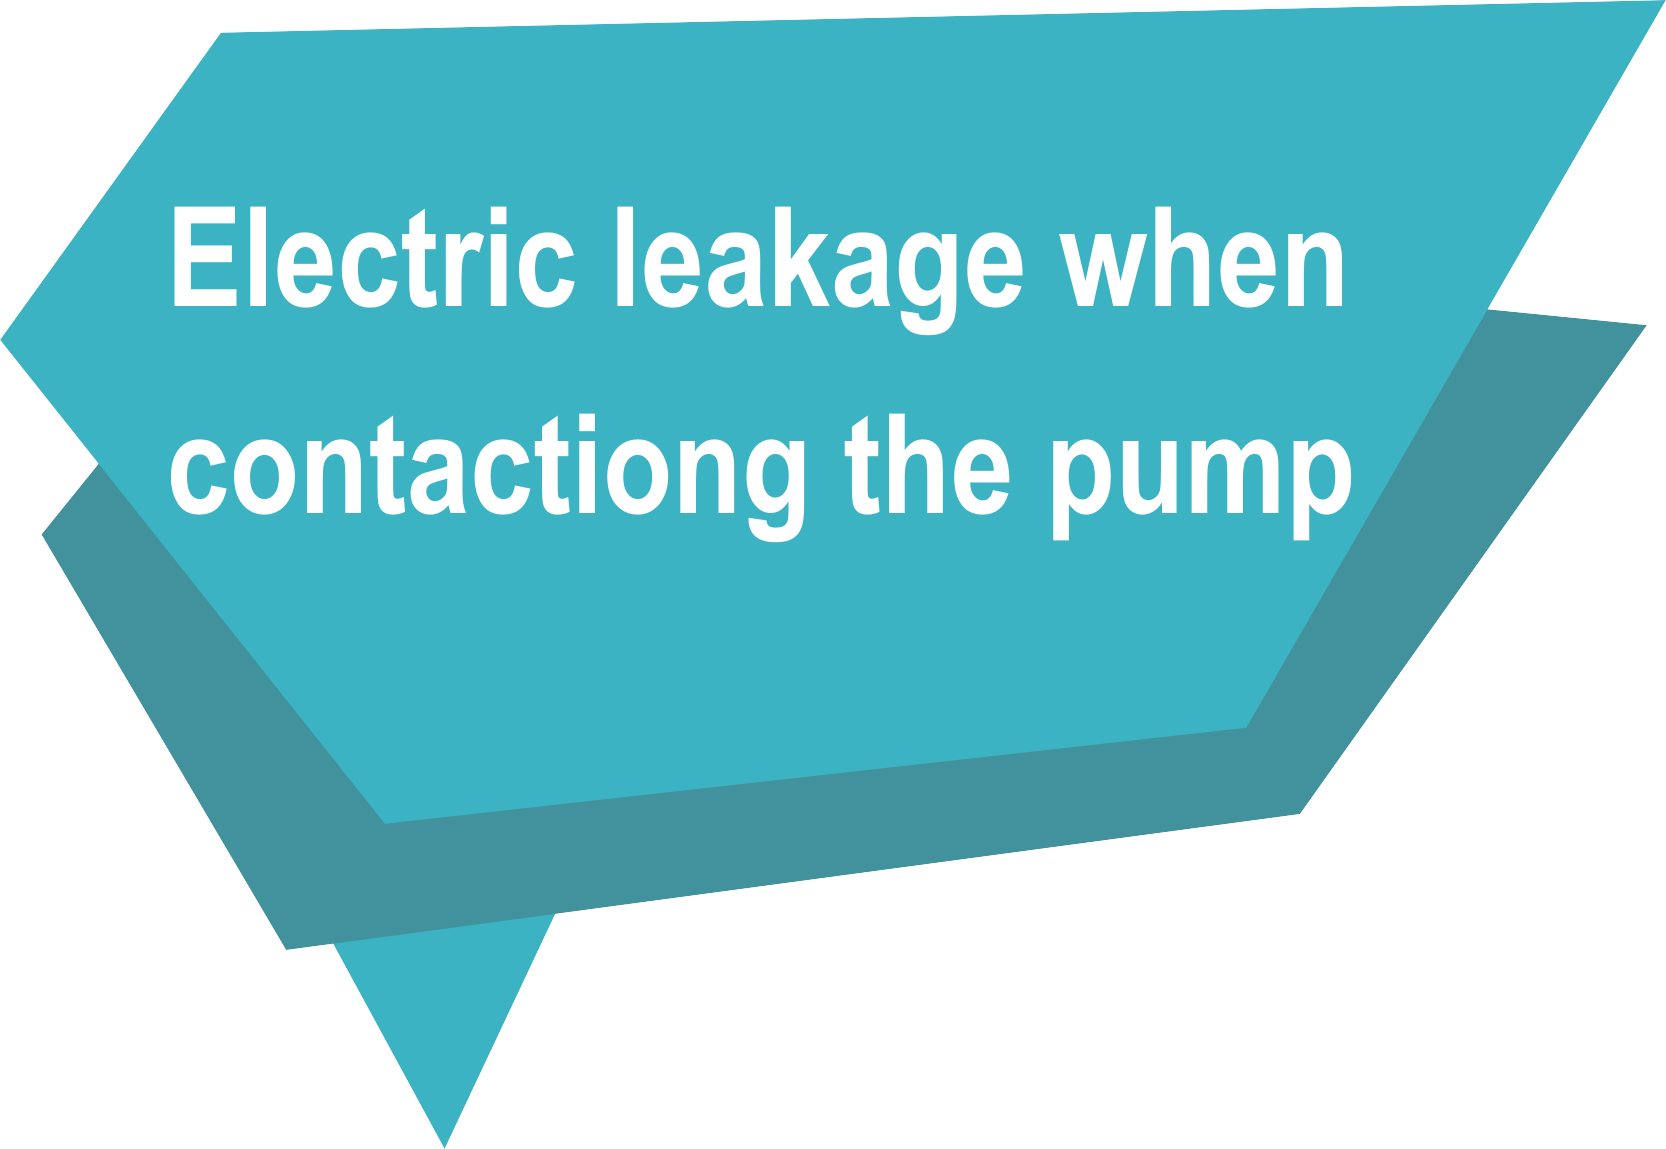 Electric leakage when contacting the pump